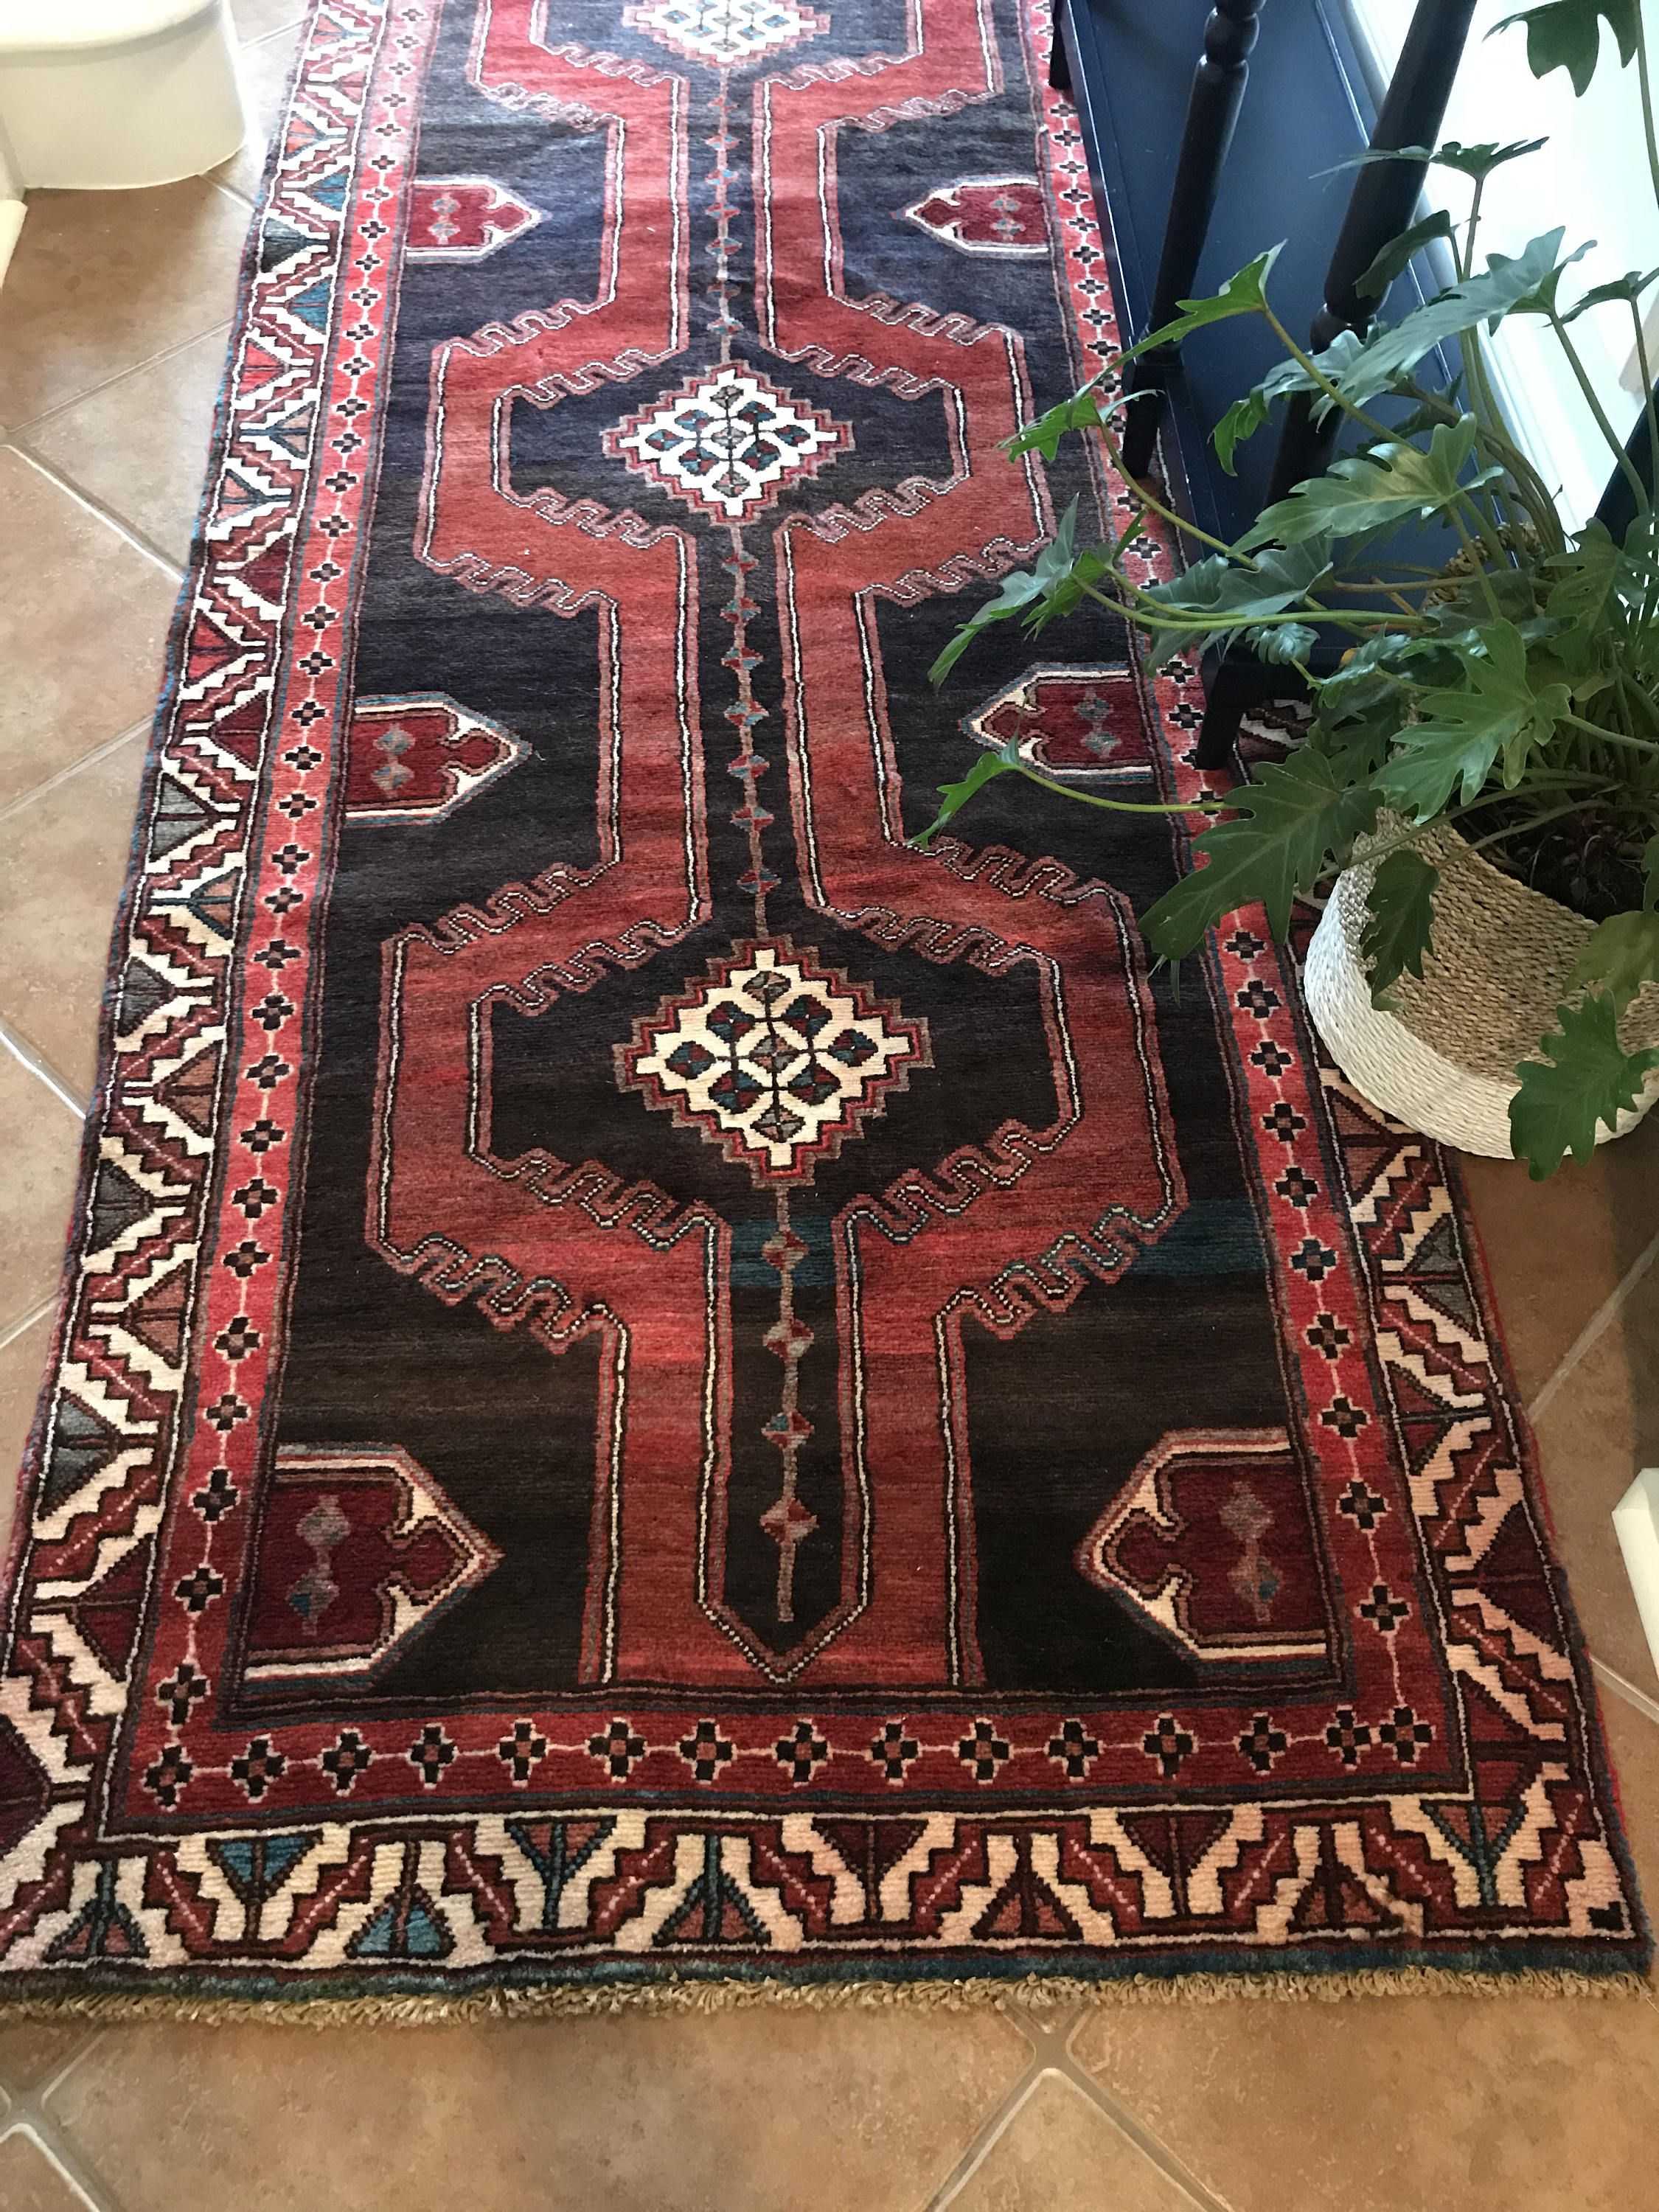 thesunnystores with images boho rug vintage rugs bohemian rug on boho chic kitchen rugs id=42464